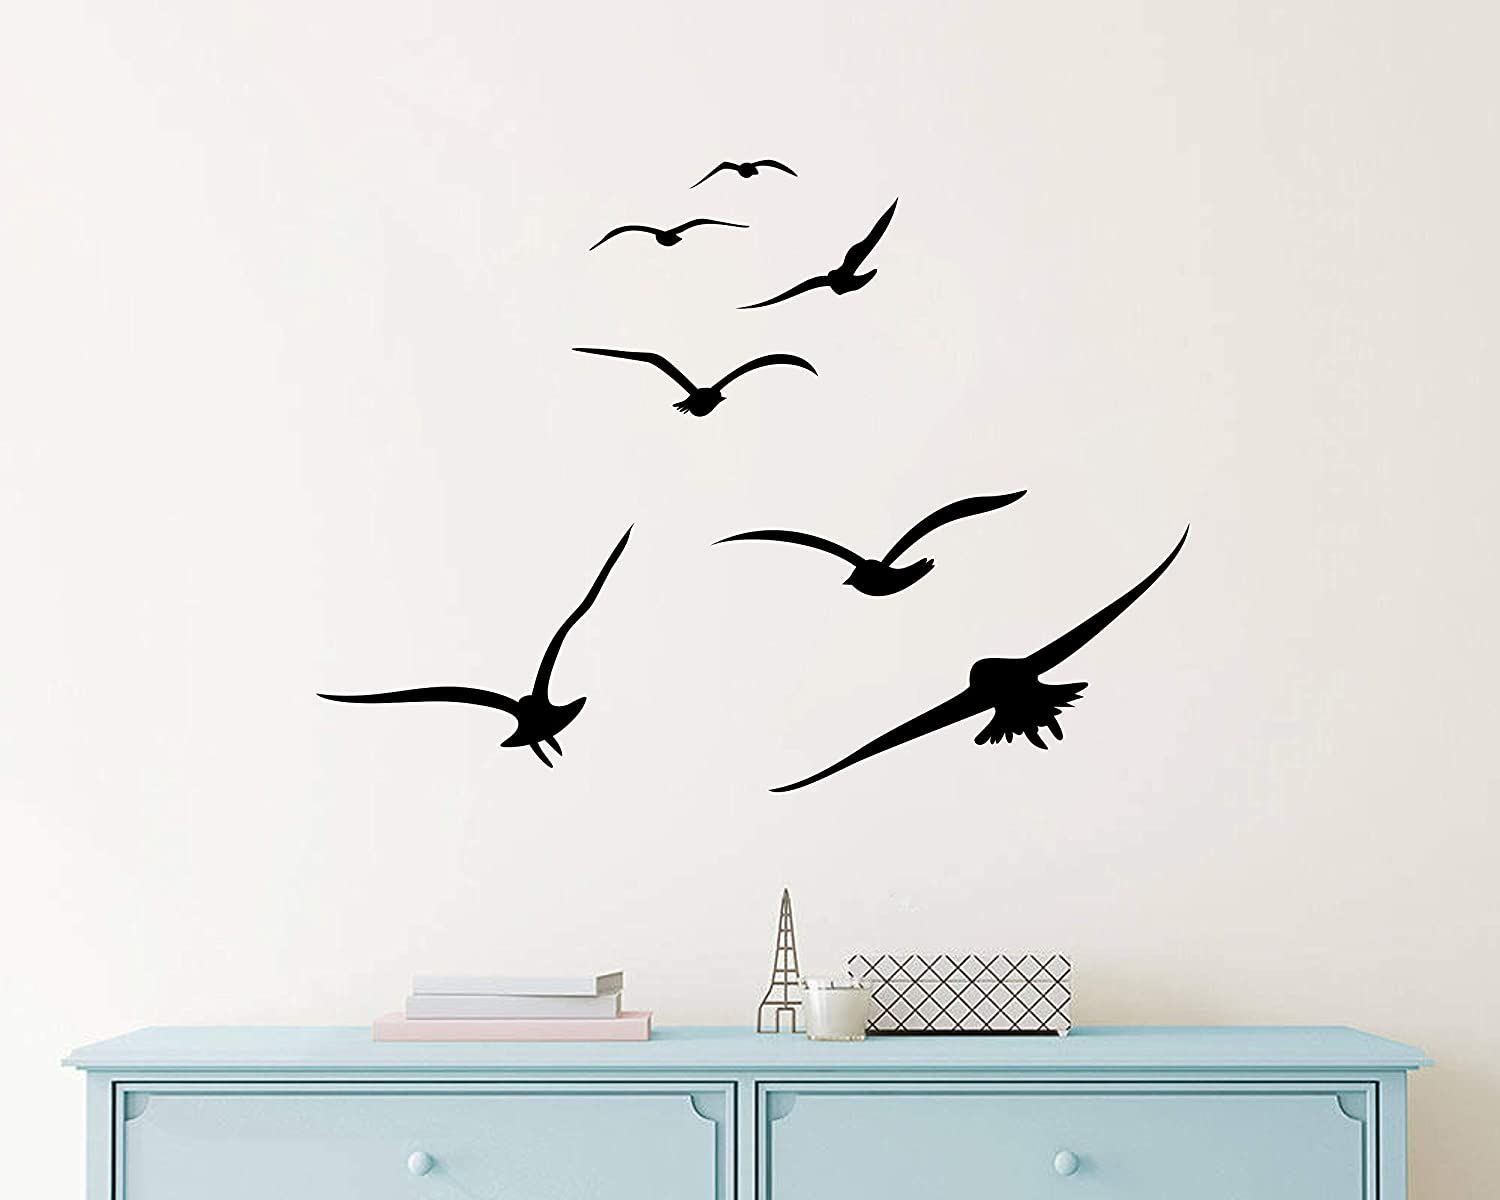 Nursery Wall Decals Y20 Office Decor Home Decor Wall Stickers Dorm Decals Flying Birds Wall Decals White Birds Vinyl Decals Modern Wall Decals for Kids Room Bedroom Living Room